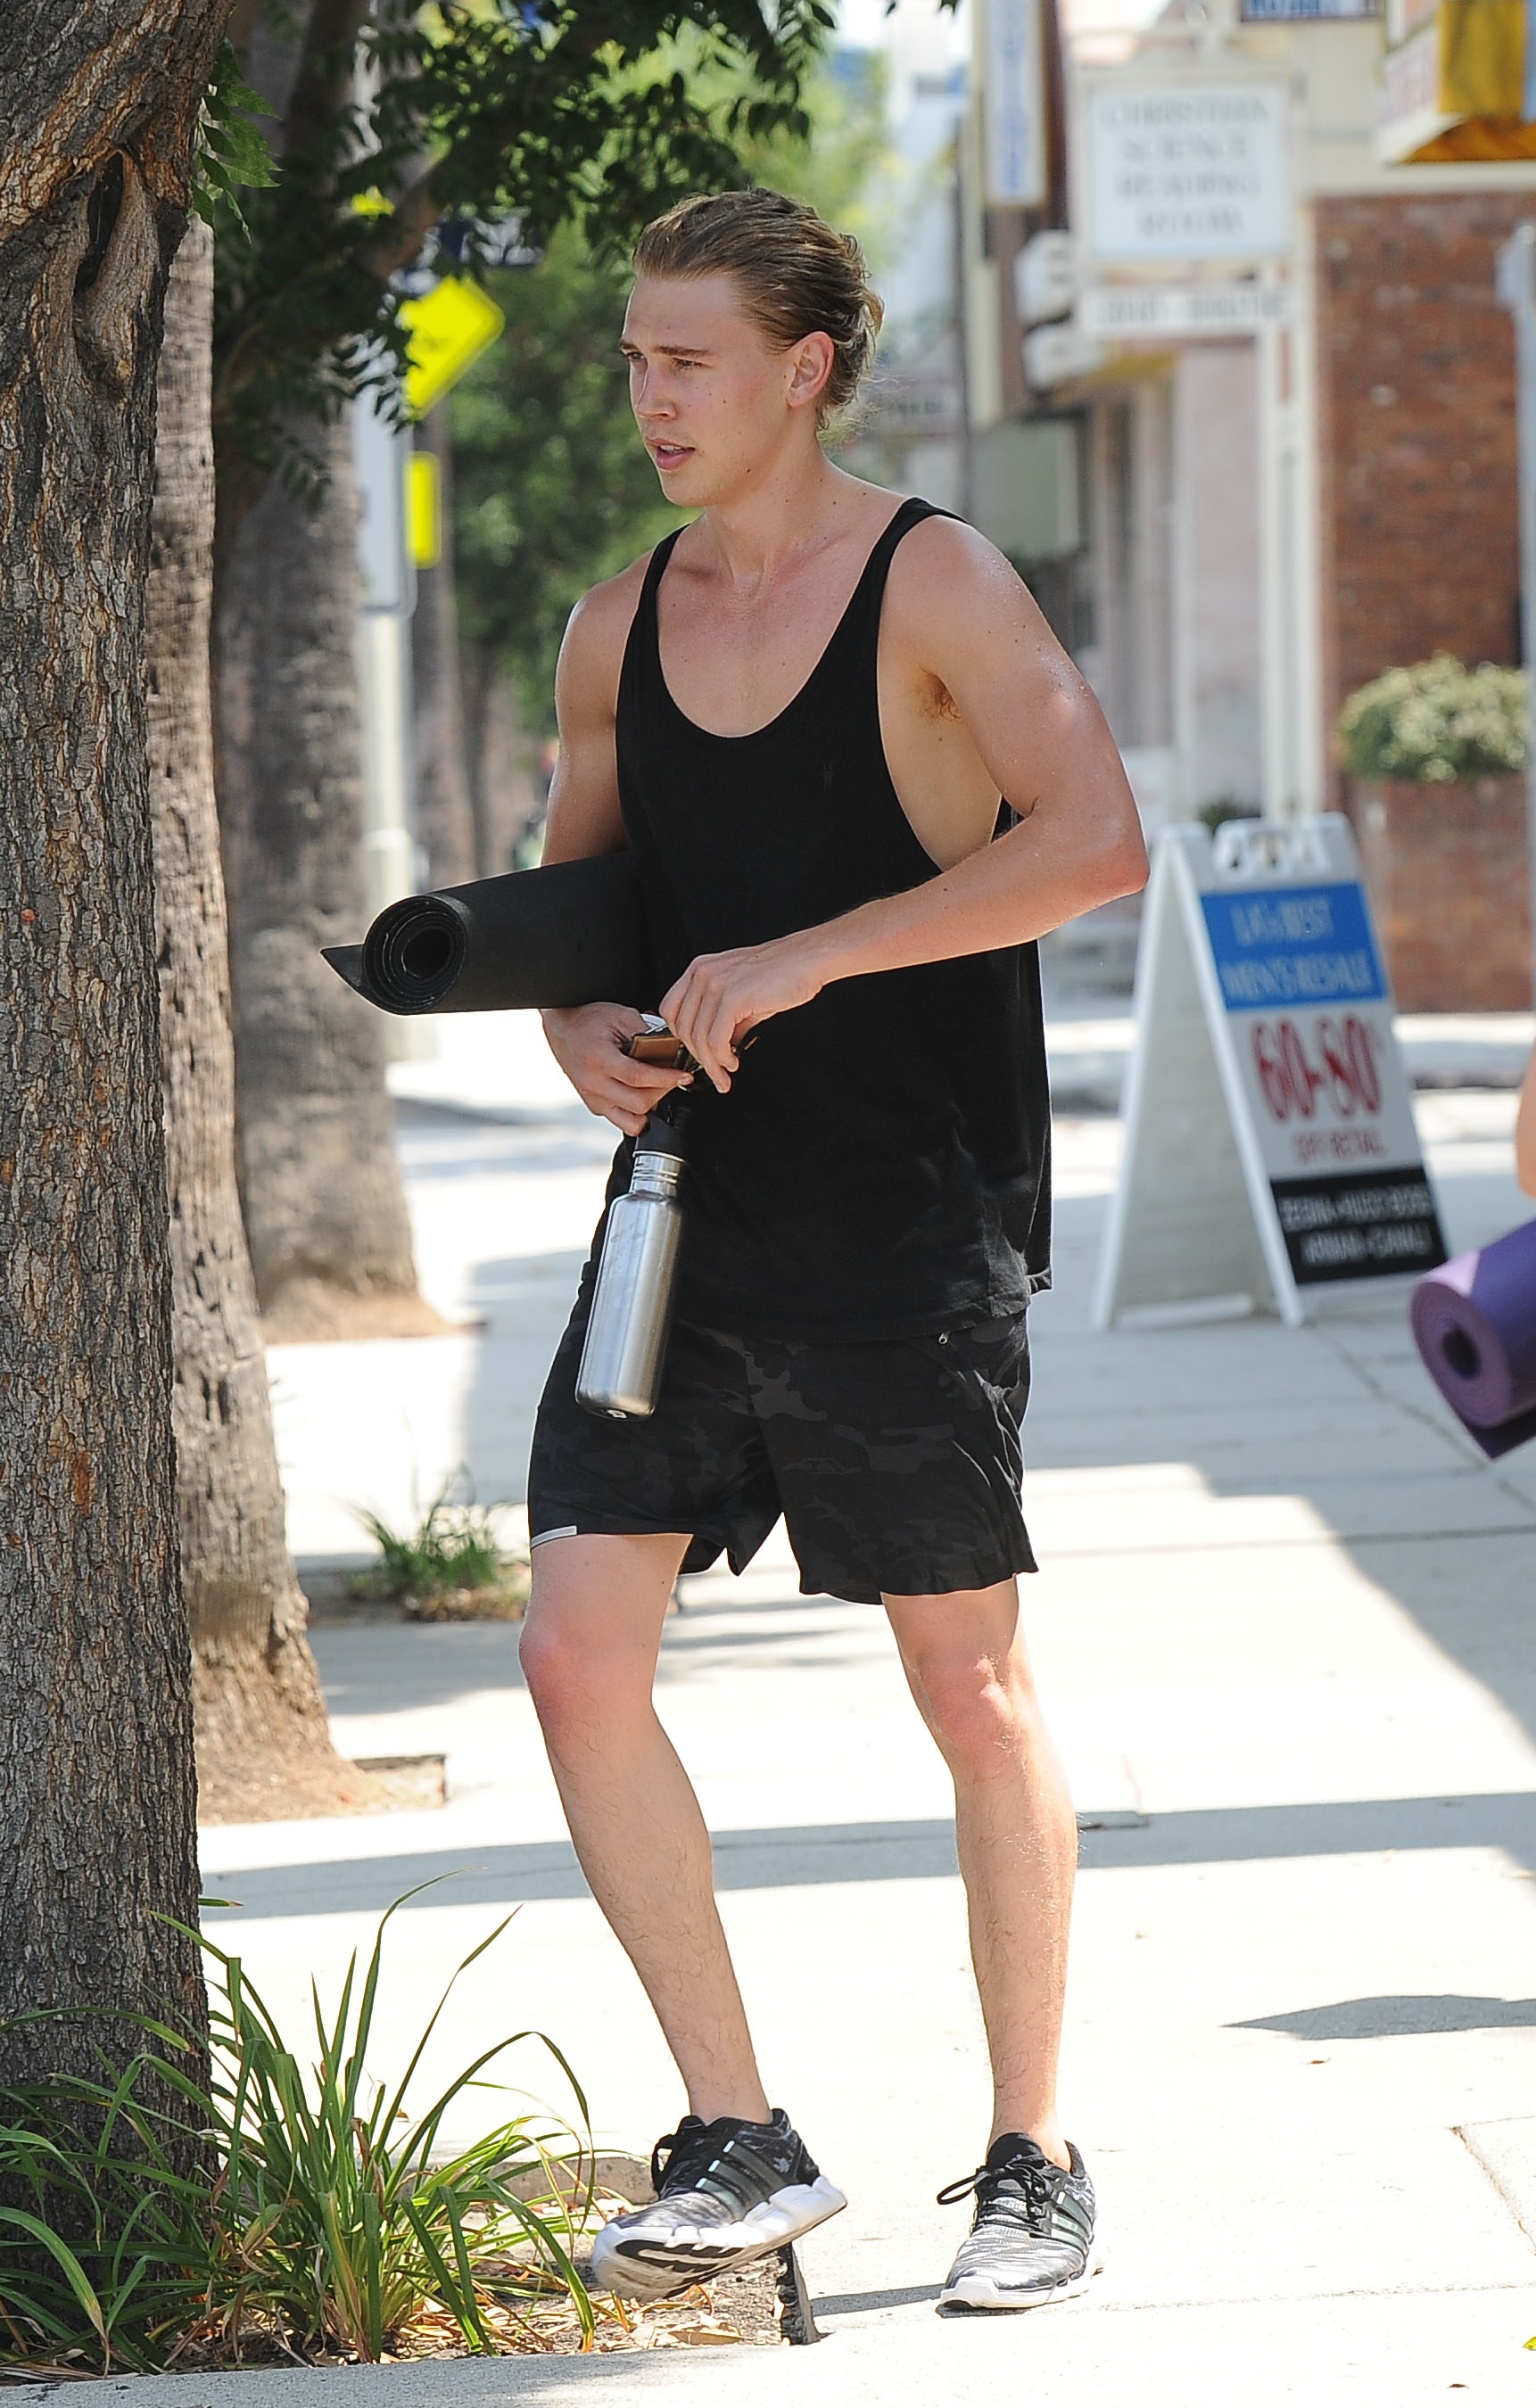 Austin Butler finishes a yoga class at his girlfriends, Vanessa Hudgens', gym                                    Featuring: Austin Butler                  Where: Los Angeles, California, United States                  When: 19 Aug 2015                  Credit: WENN.com